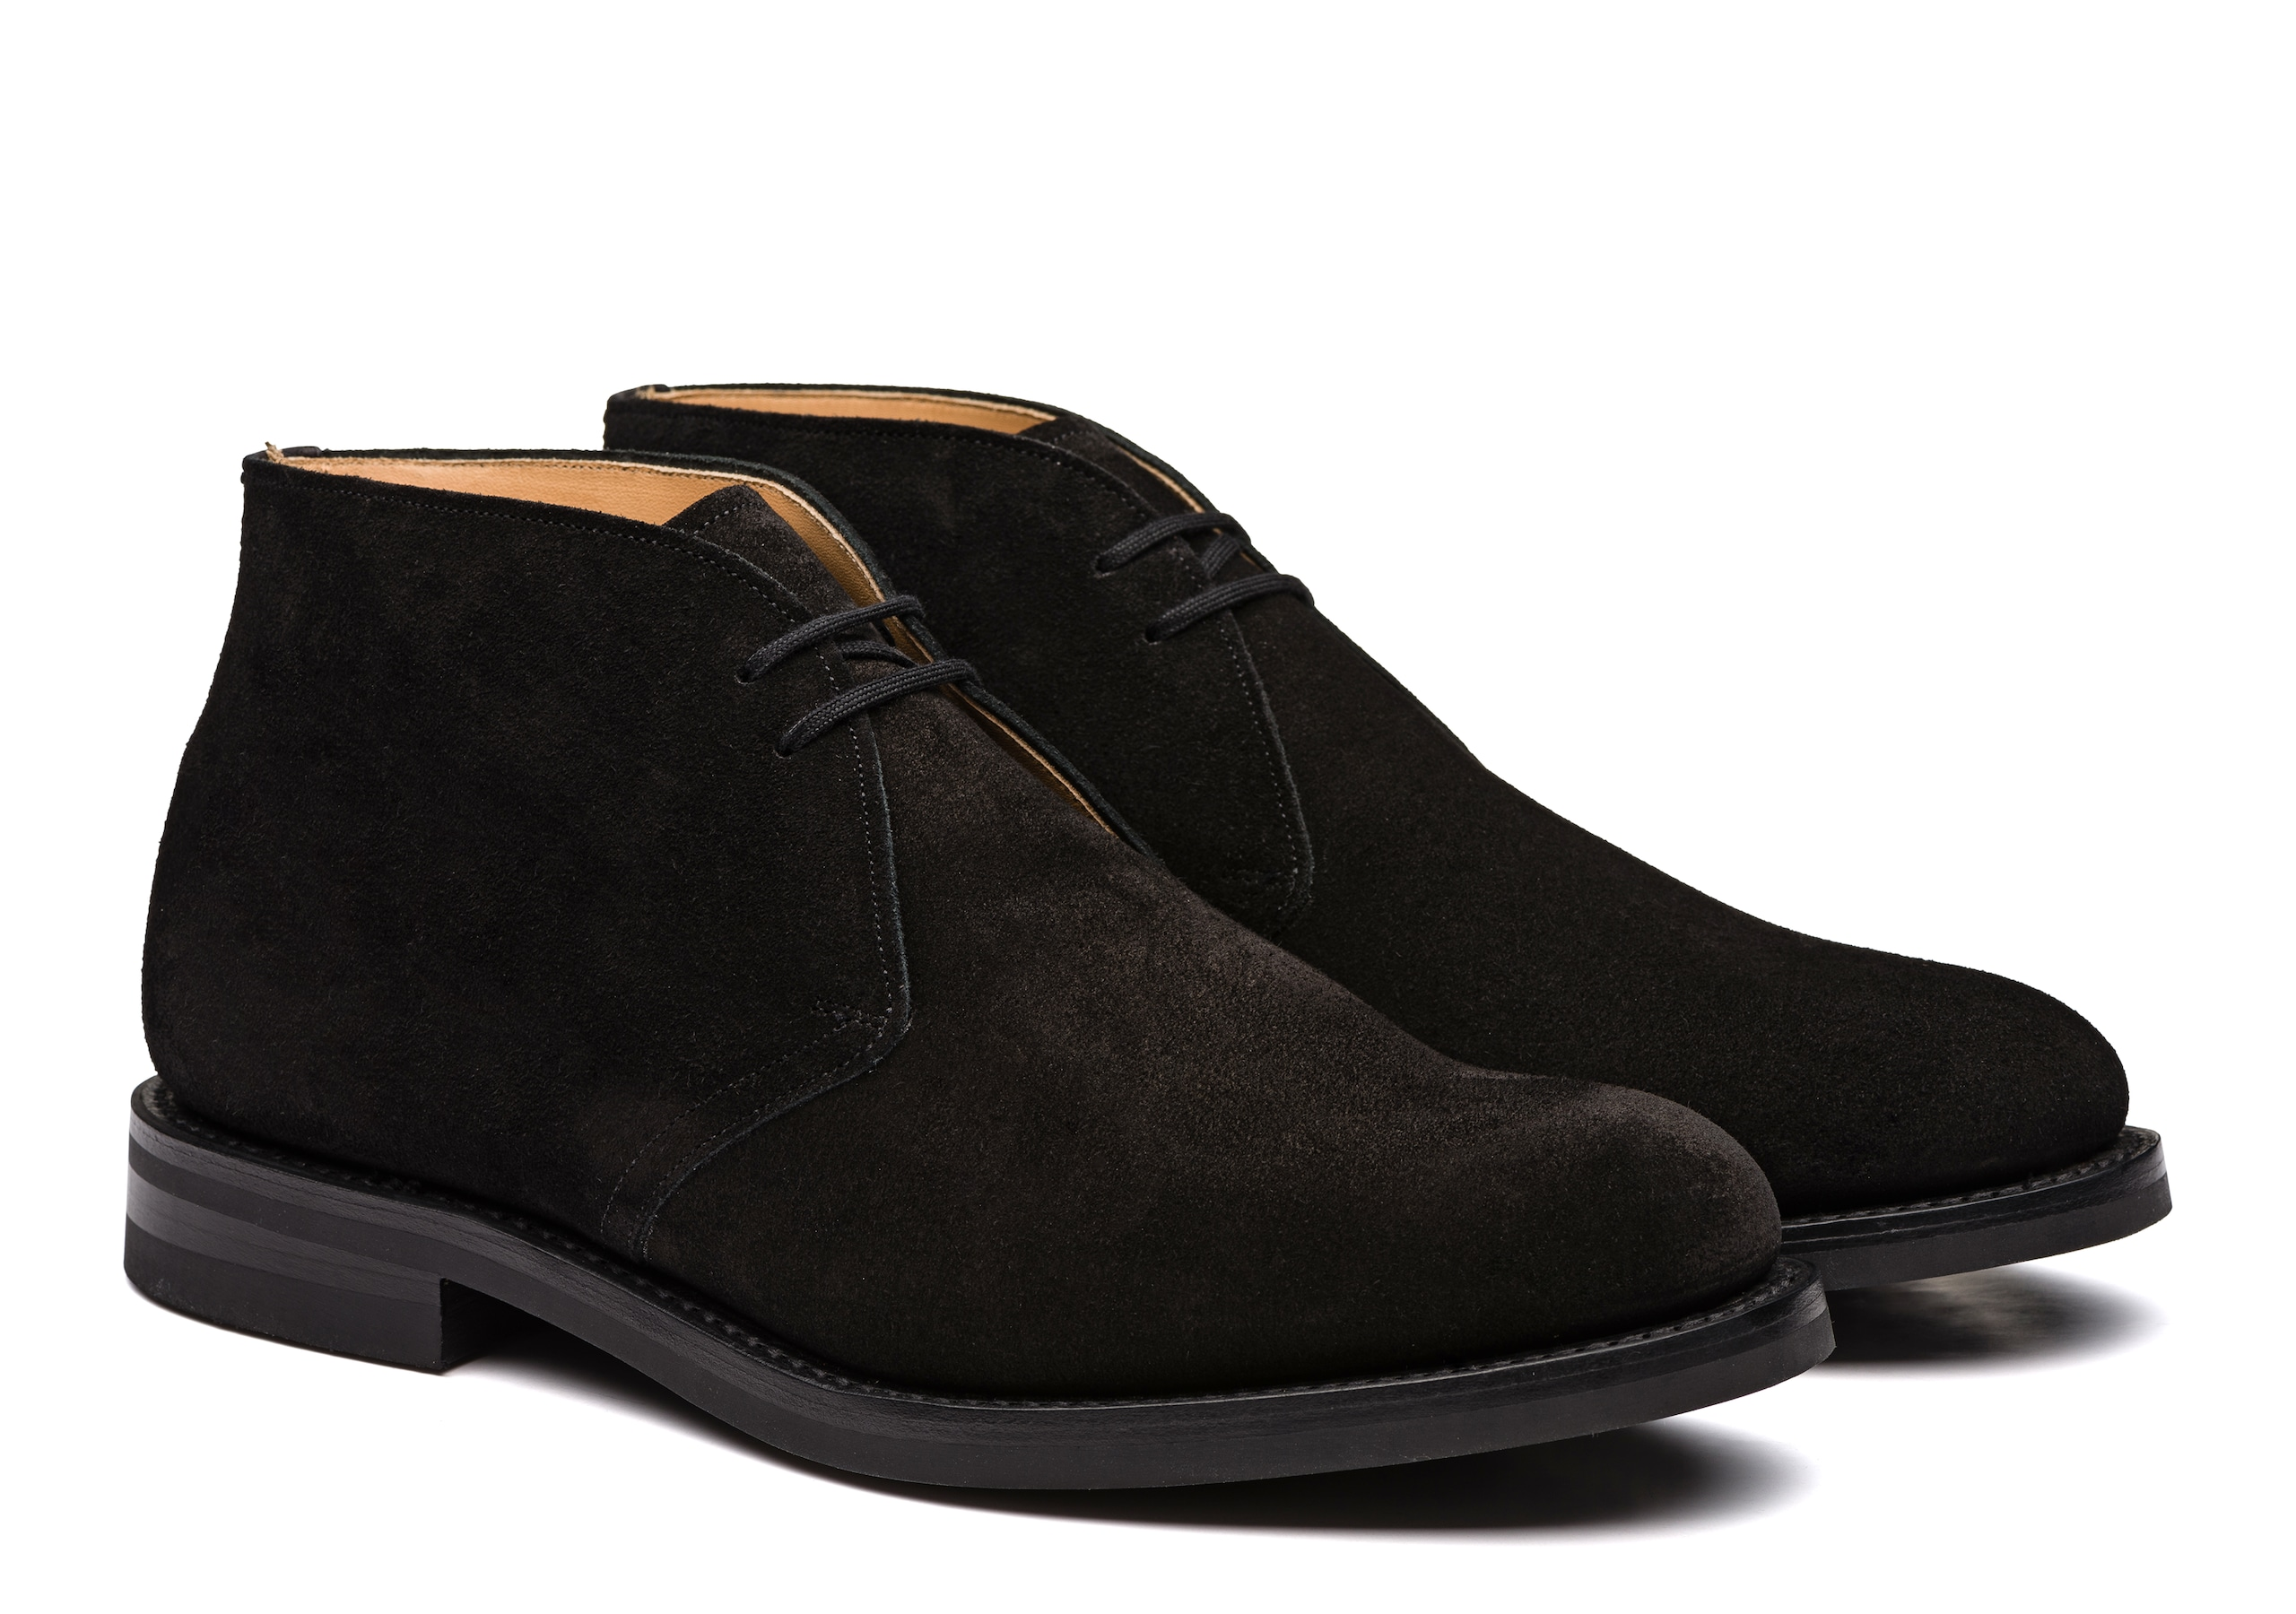 Ryder 3 Church's Suede Desert Boot Black